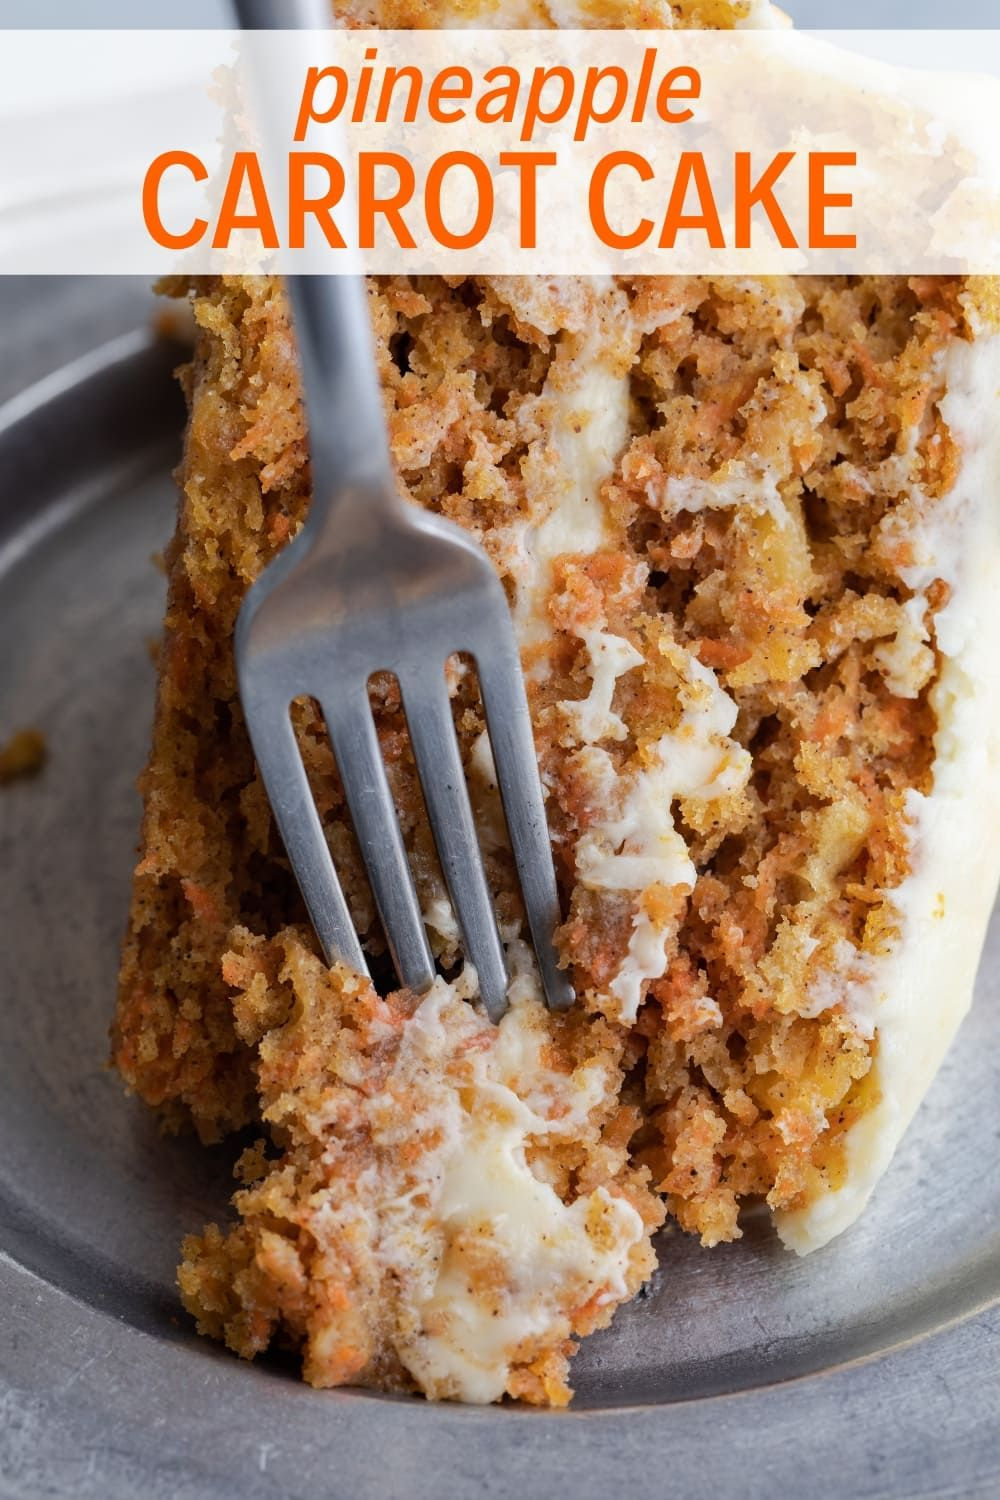 Pineapple Carrot Cake Pineapple Carrot Cake with Orange Cream Cheese Frosting couldn't be more perfect for Easter and spring entertaining. It's sweet, flavorful, and totally delicious!